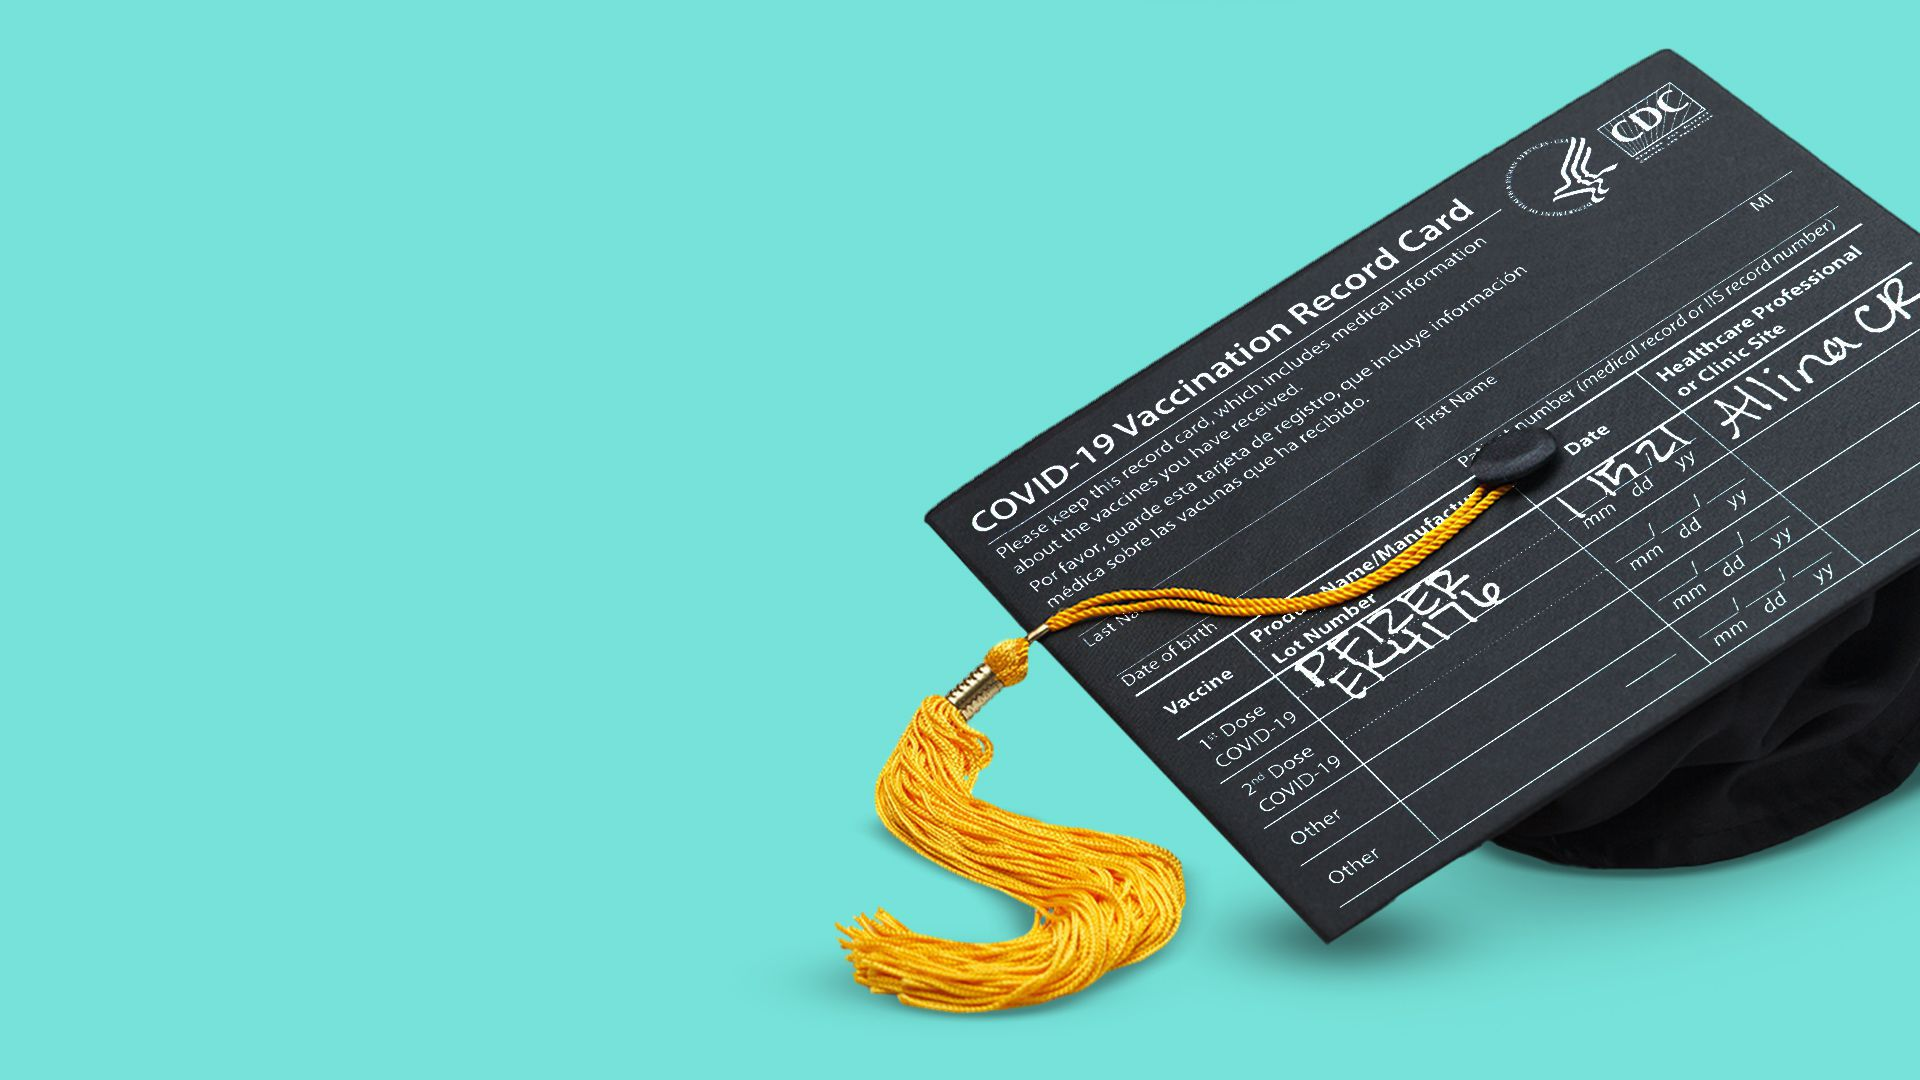 Illustration of a vaccine card as the mortarboard of a graduation cap.